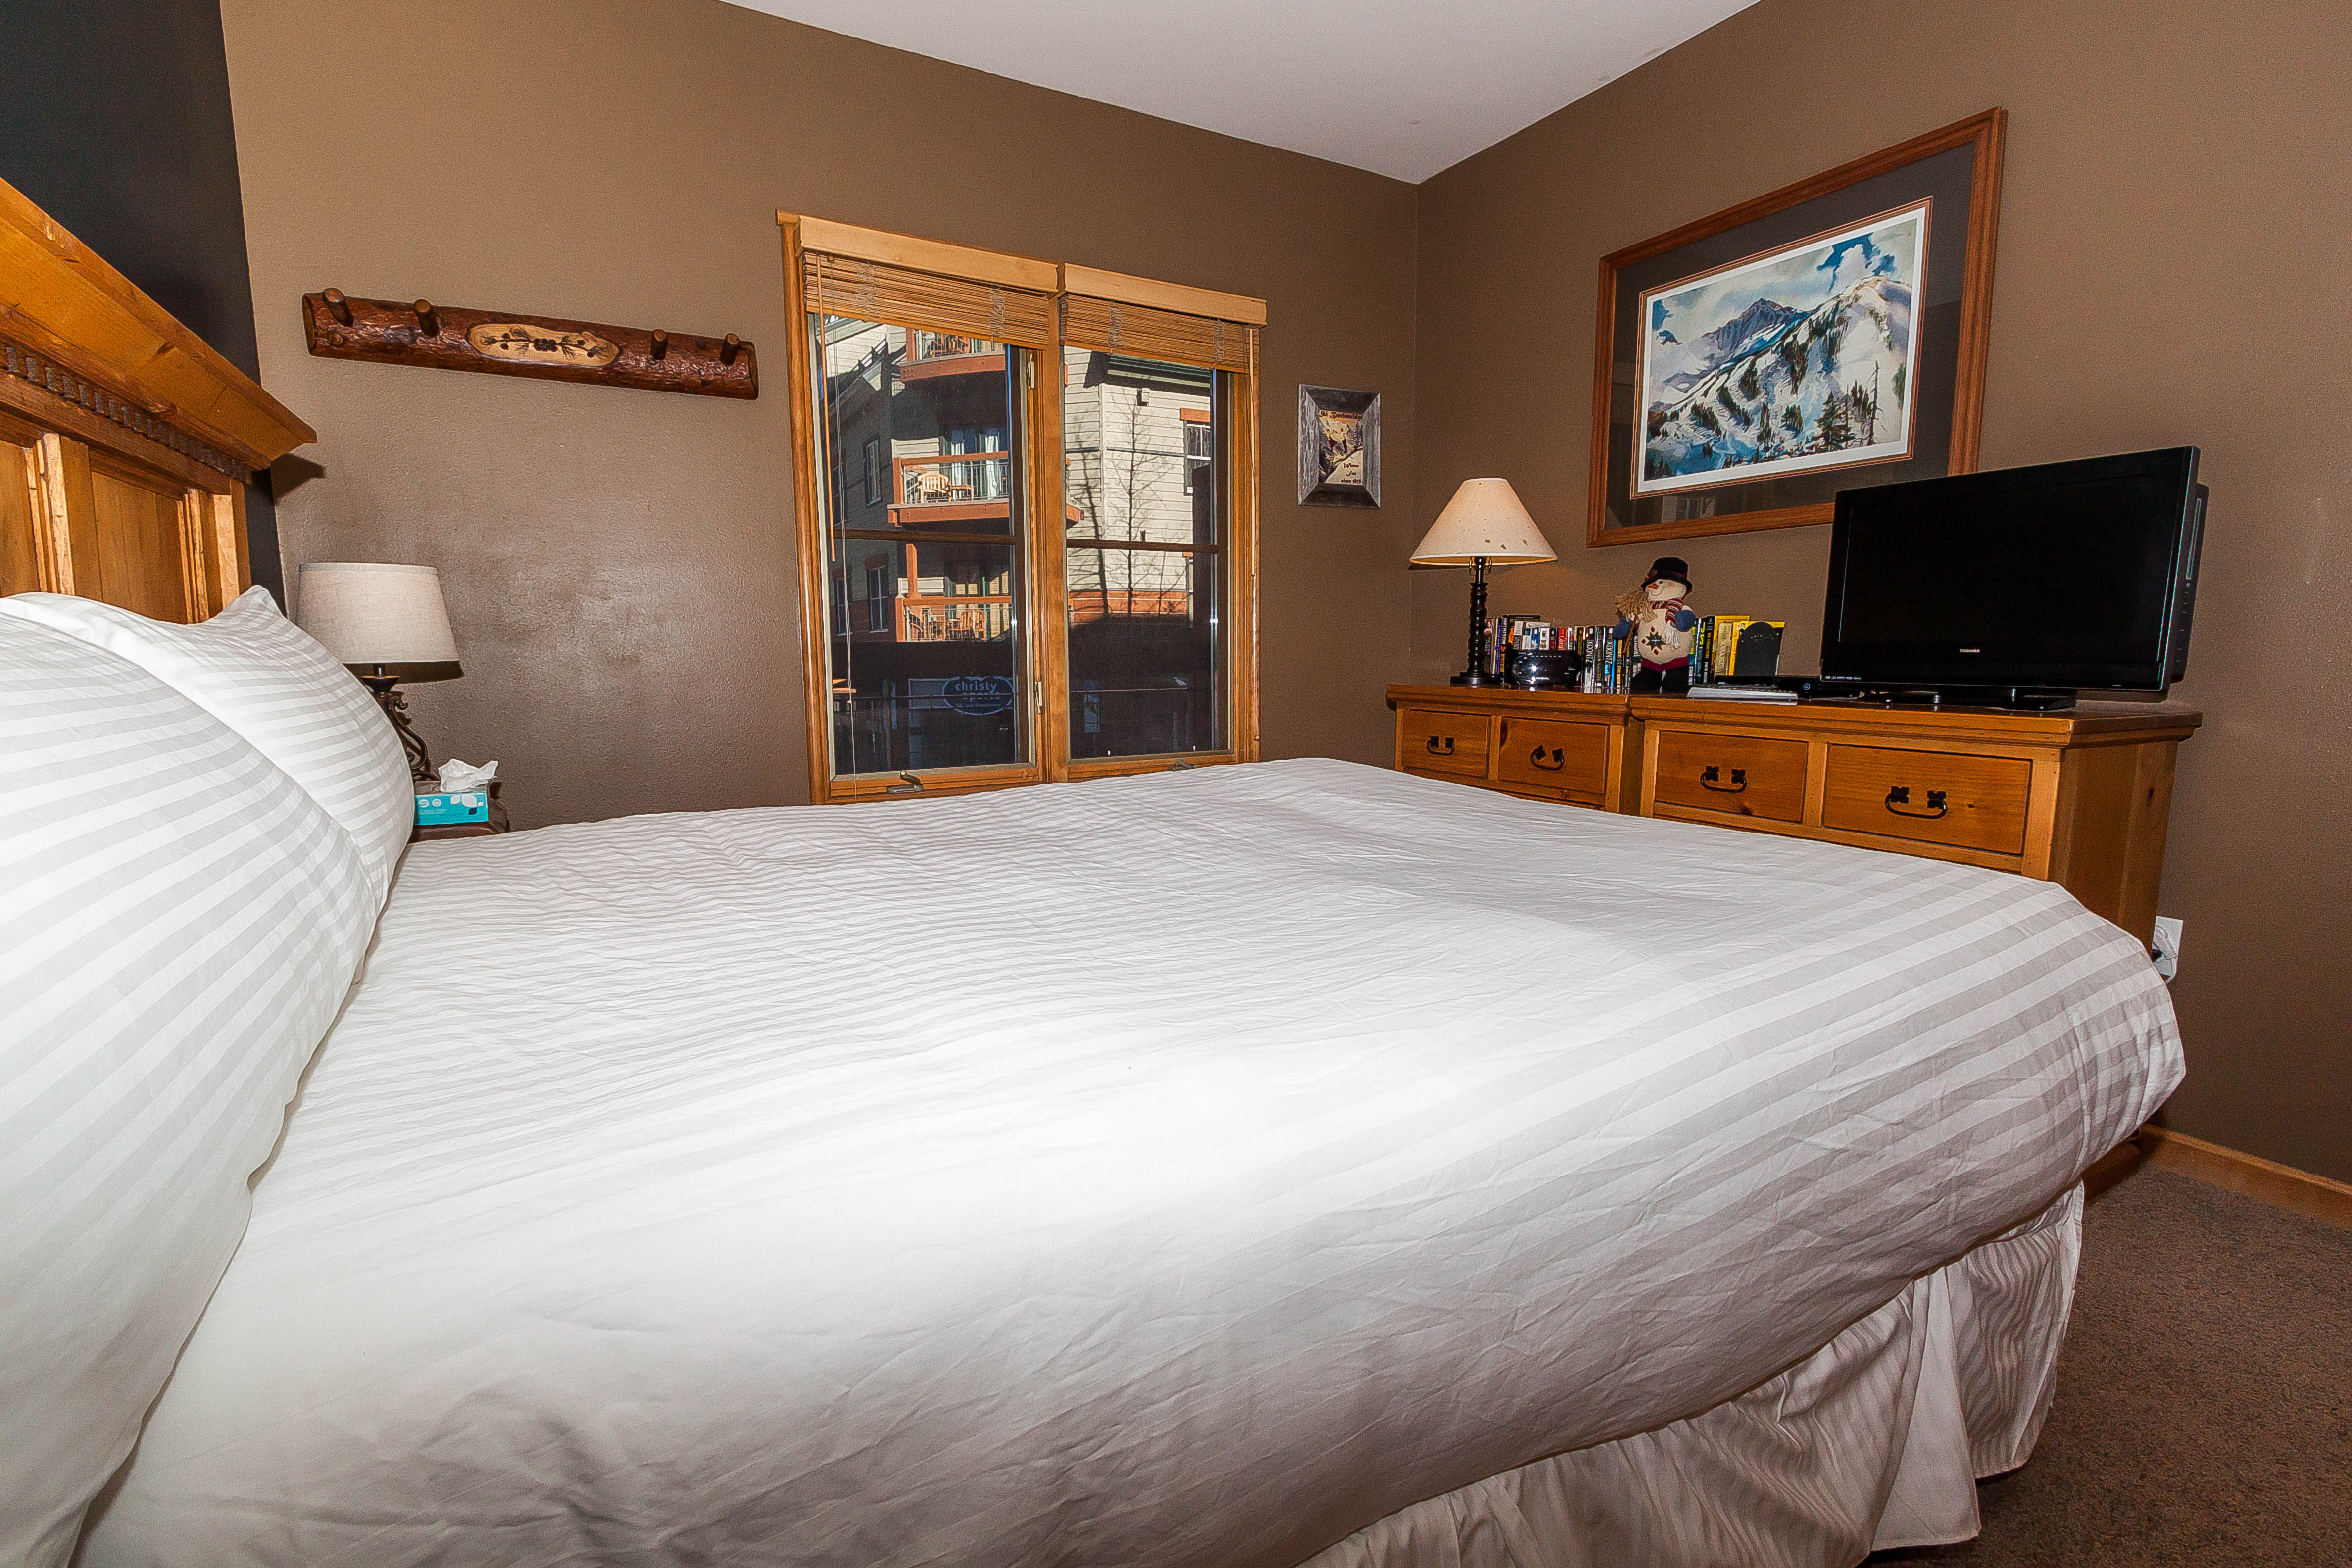 The bedroom features a queen-sized bed with Ivory White Bedding and a flat screen TV with a DVD player.